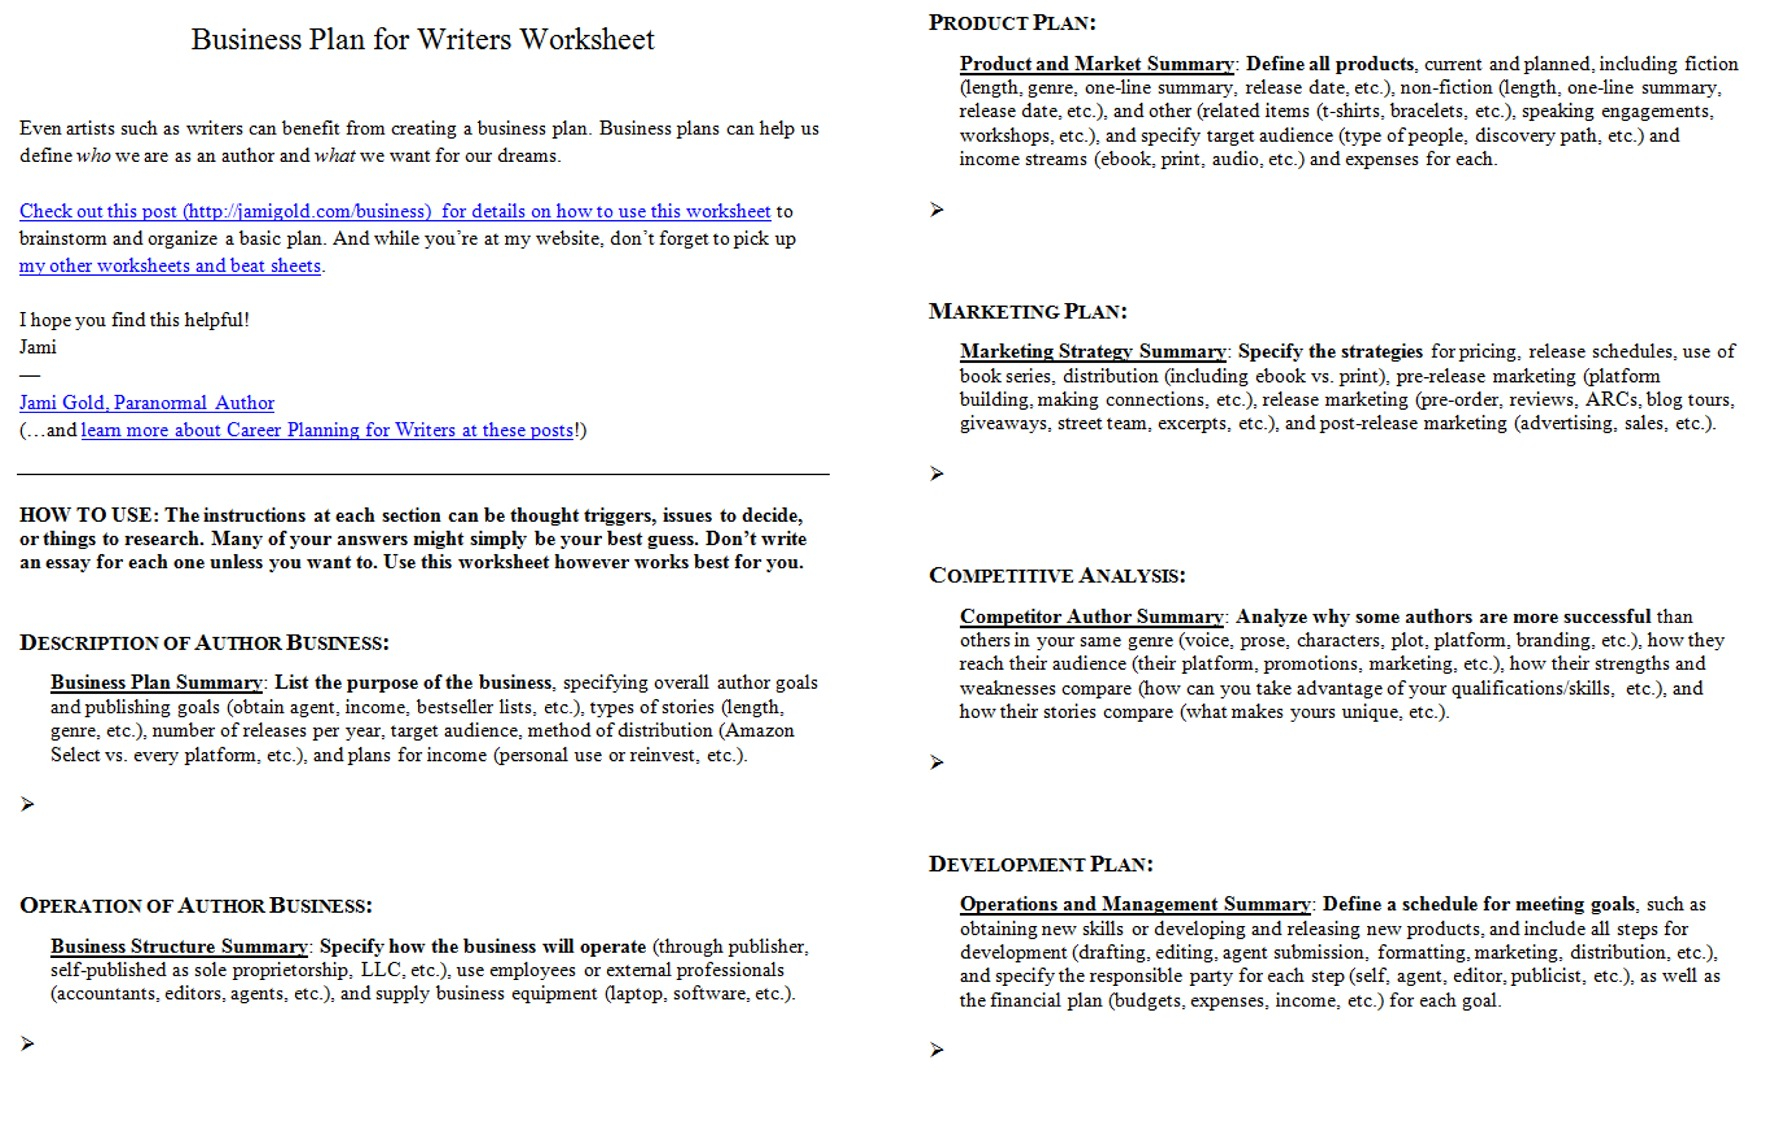 Proatmealus  Winning Worksheets For Writers  Jami Gold Paranormal Author With Engaging Screen Shot Of Both Pages Of The Business Plan For Writers Worksheet With Beauteous Rd Grade Free Math Worksheets Also Recombinant Dna Worksheet In Addition Convection Currents Worksheet And Theme Worksheets High School As Well As Dividing Fractions Worksheet With Answers Additionally Pollination Worksheet From Jamigoldcom With Proatmealus  Engaging Worksheets For Writers  Jami Gold Paranormal Author With Beauteous Screen Shot Of Both Pages Of The Business Plan For Writers Worksheet And Winning Rd Grade Free Math Worksheets Also Recombinant Dna Worksheet In Addition Convection Currents Worksheet From Jamigoldcom